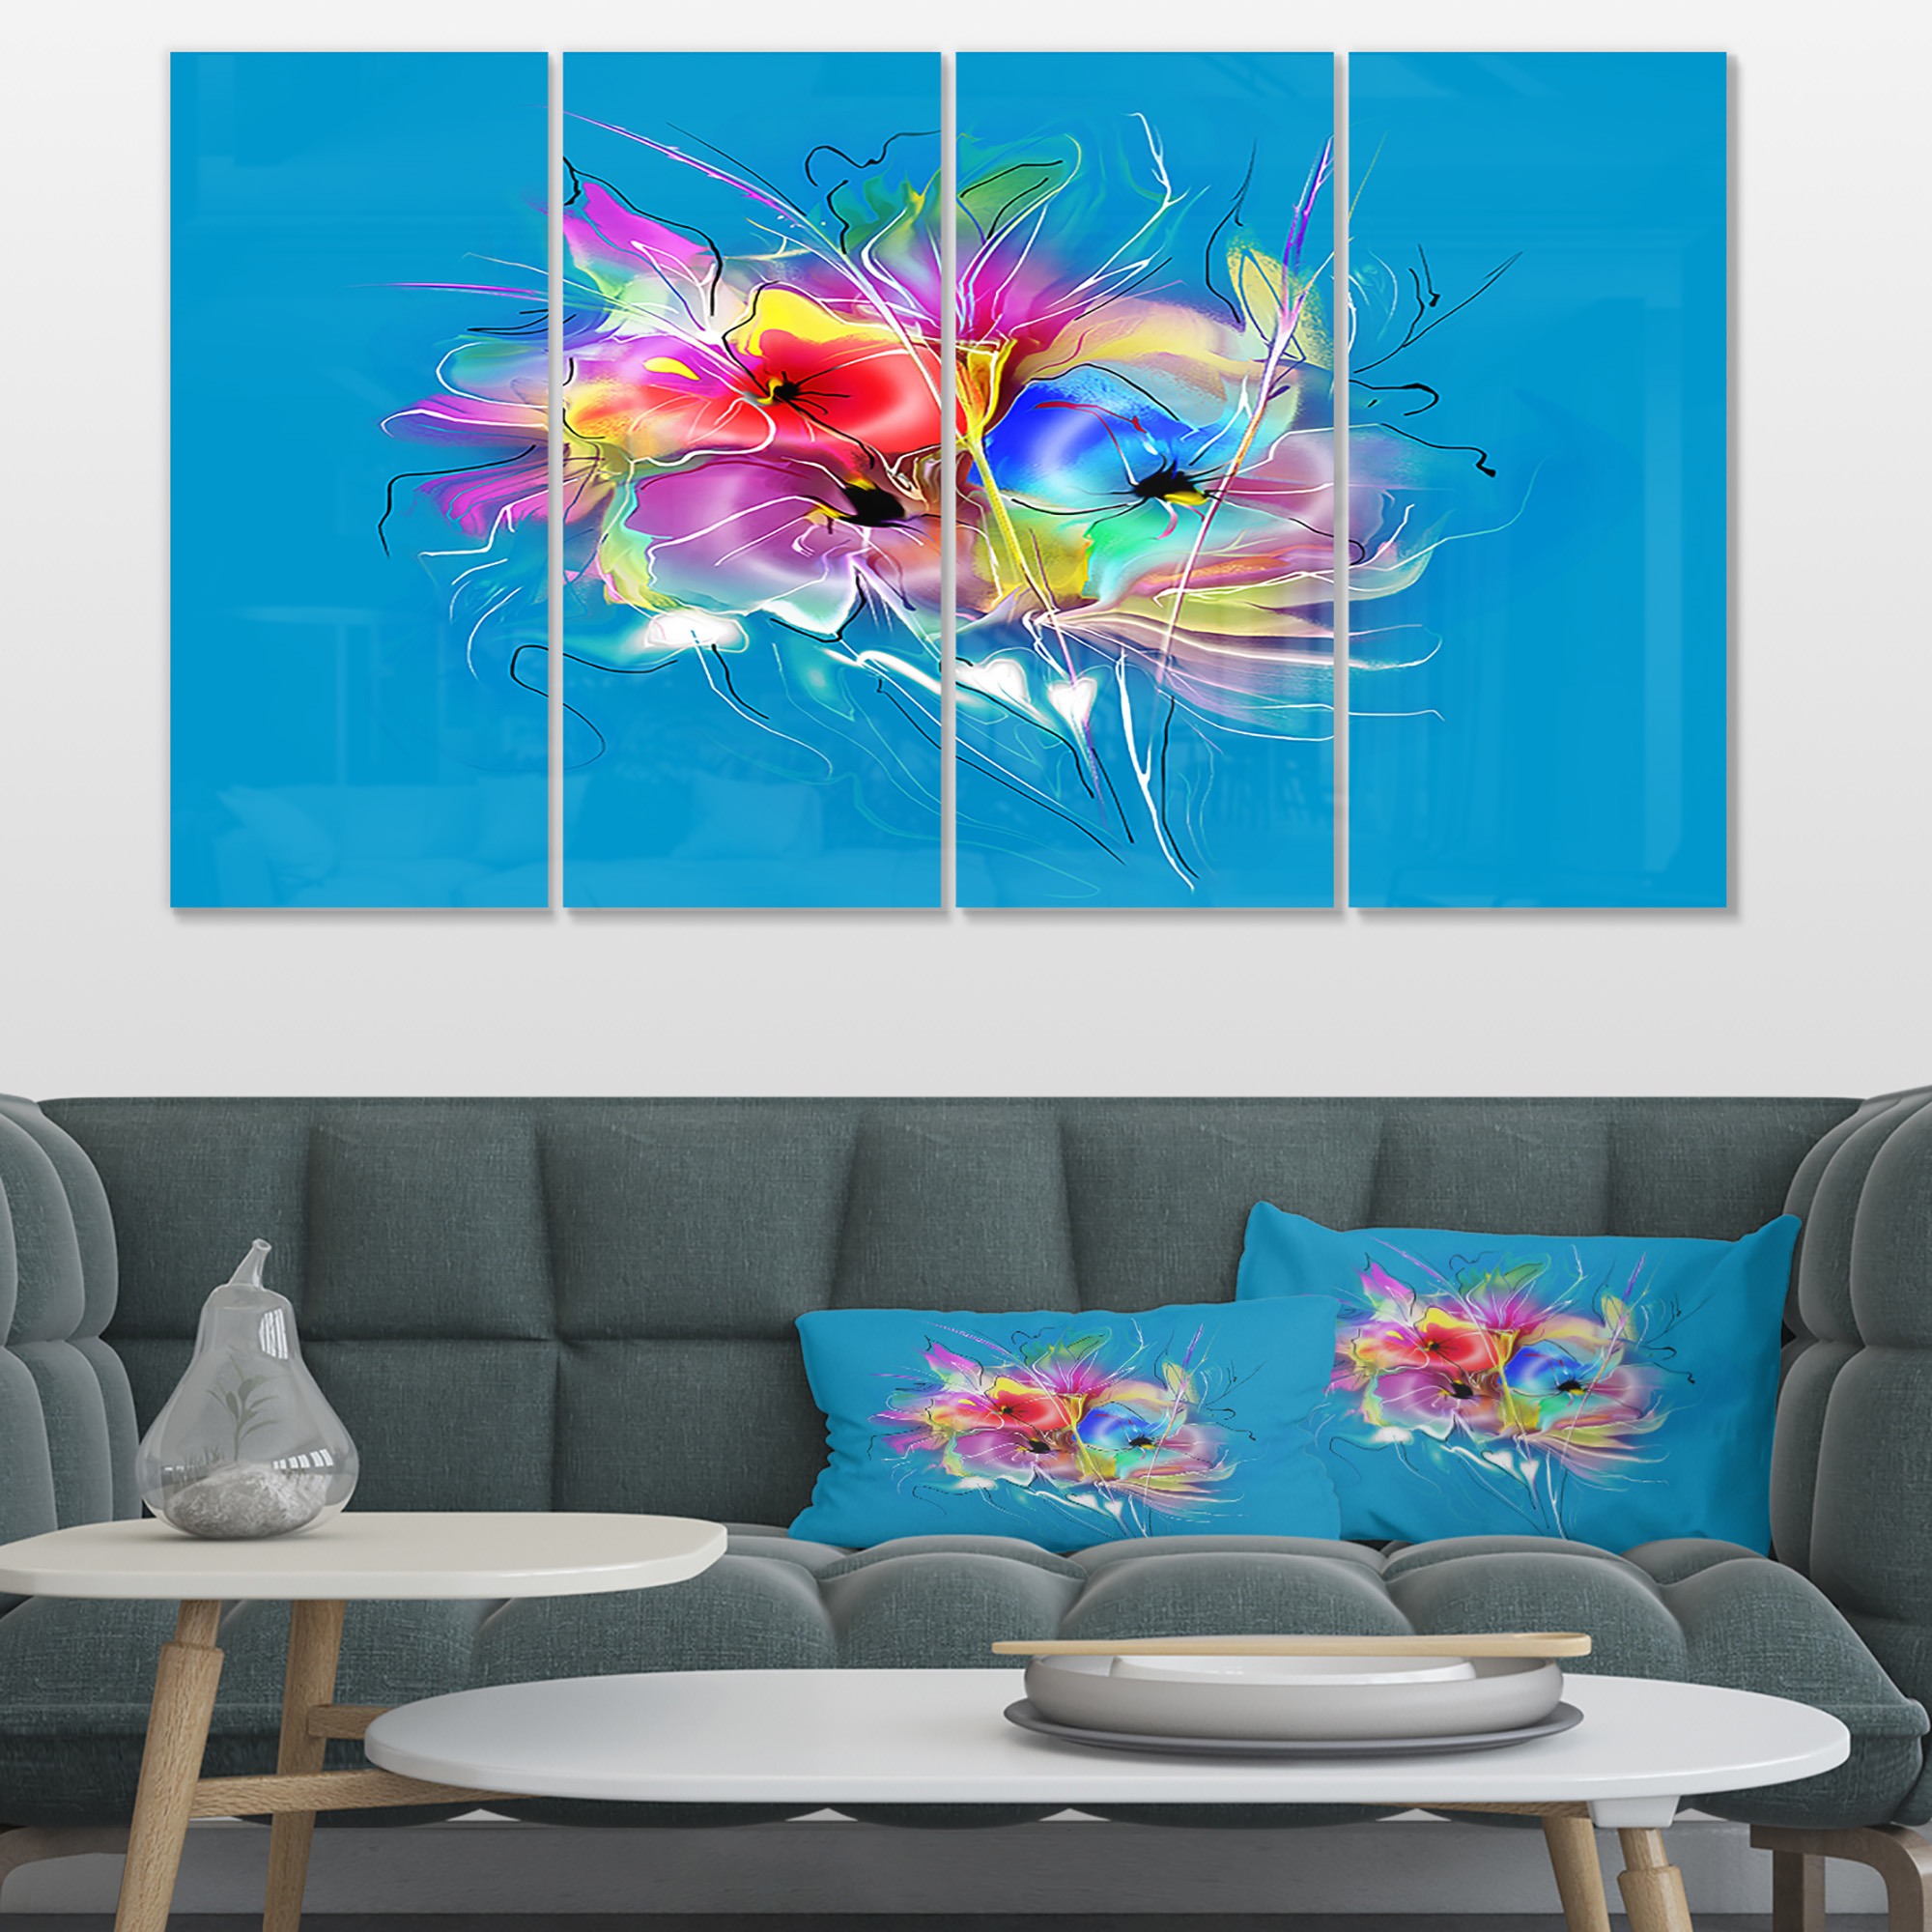 Summer Colorful Flowers on Blue - Extra Large Floral Wall Art - image 4 de 4